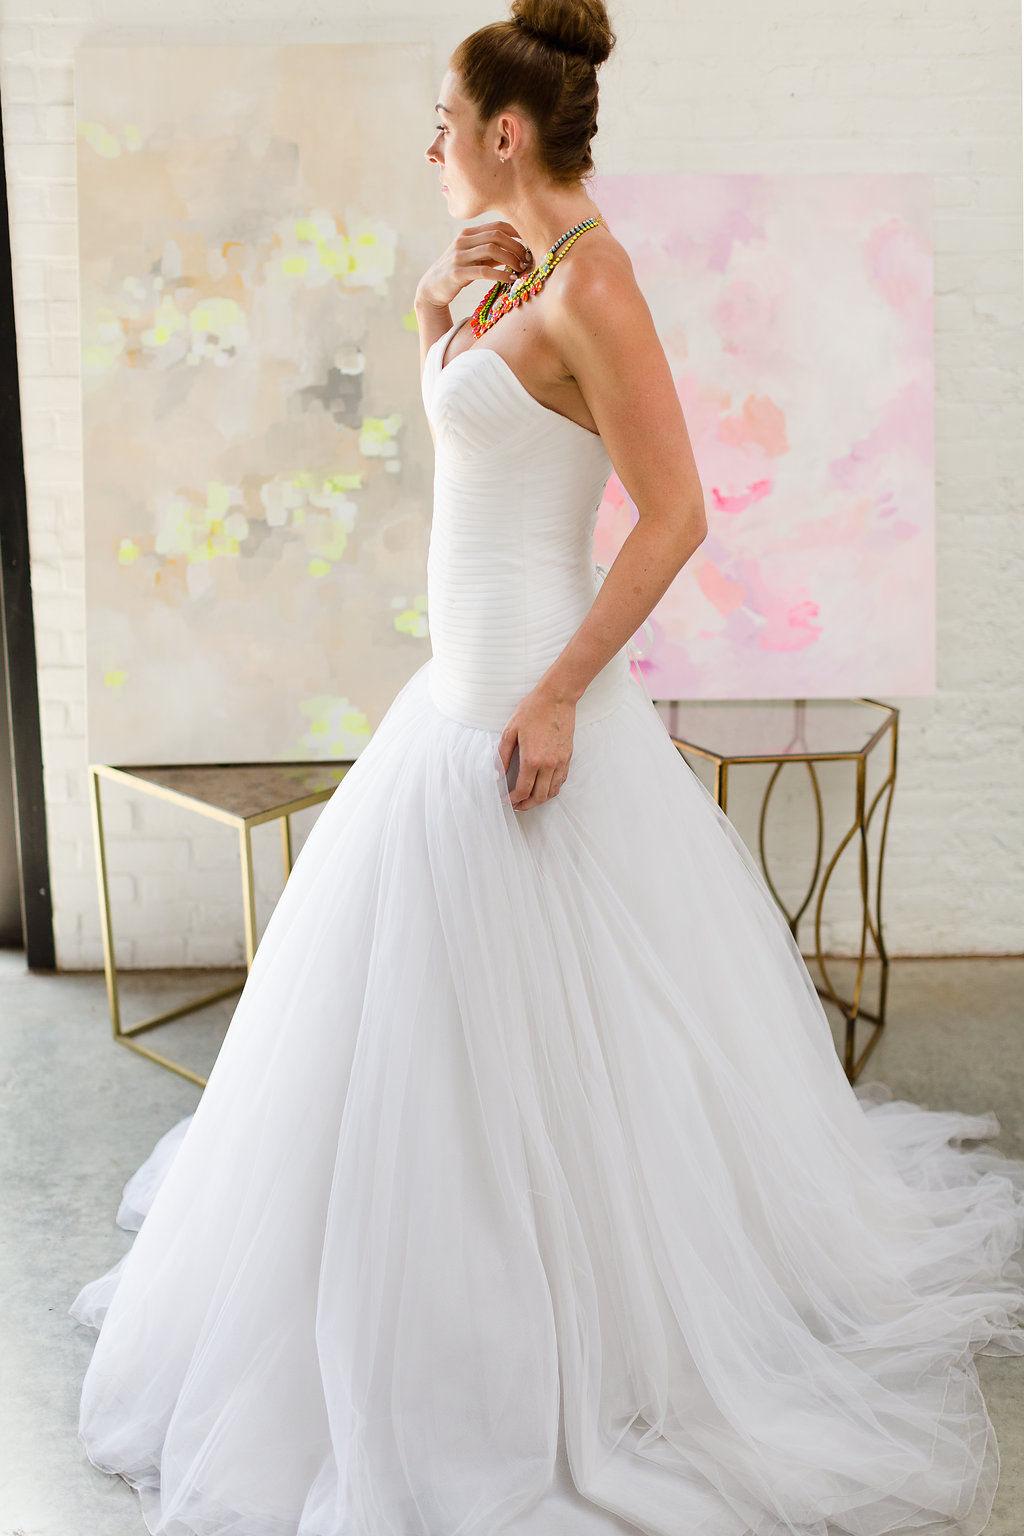 Wedding Dress for a Modern Neon Inspired Celebration / dress from Designer Loft NYC / photo by Jessica Haley Photography